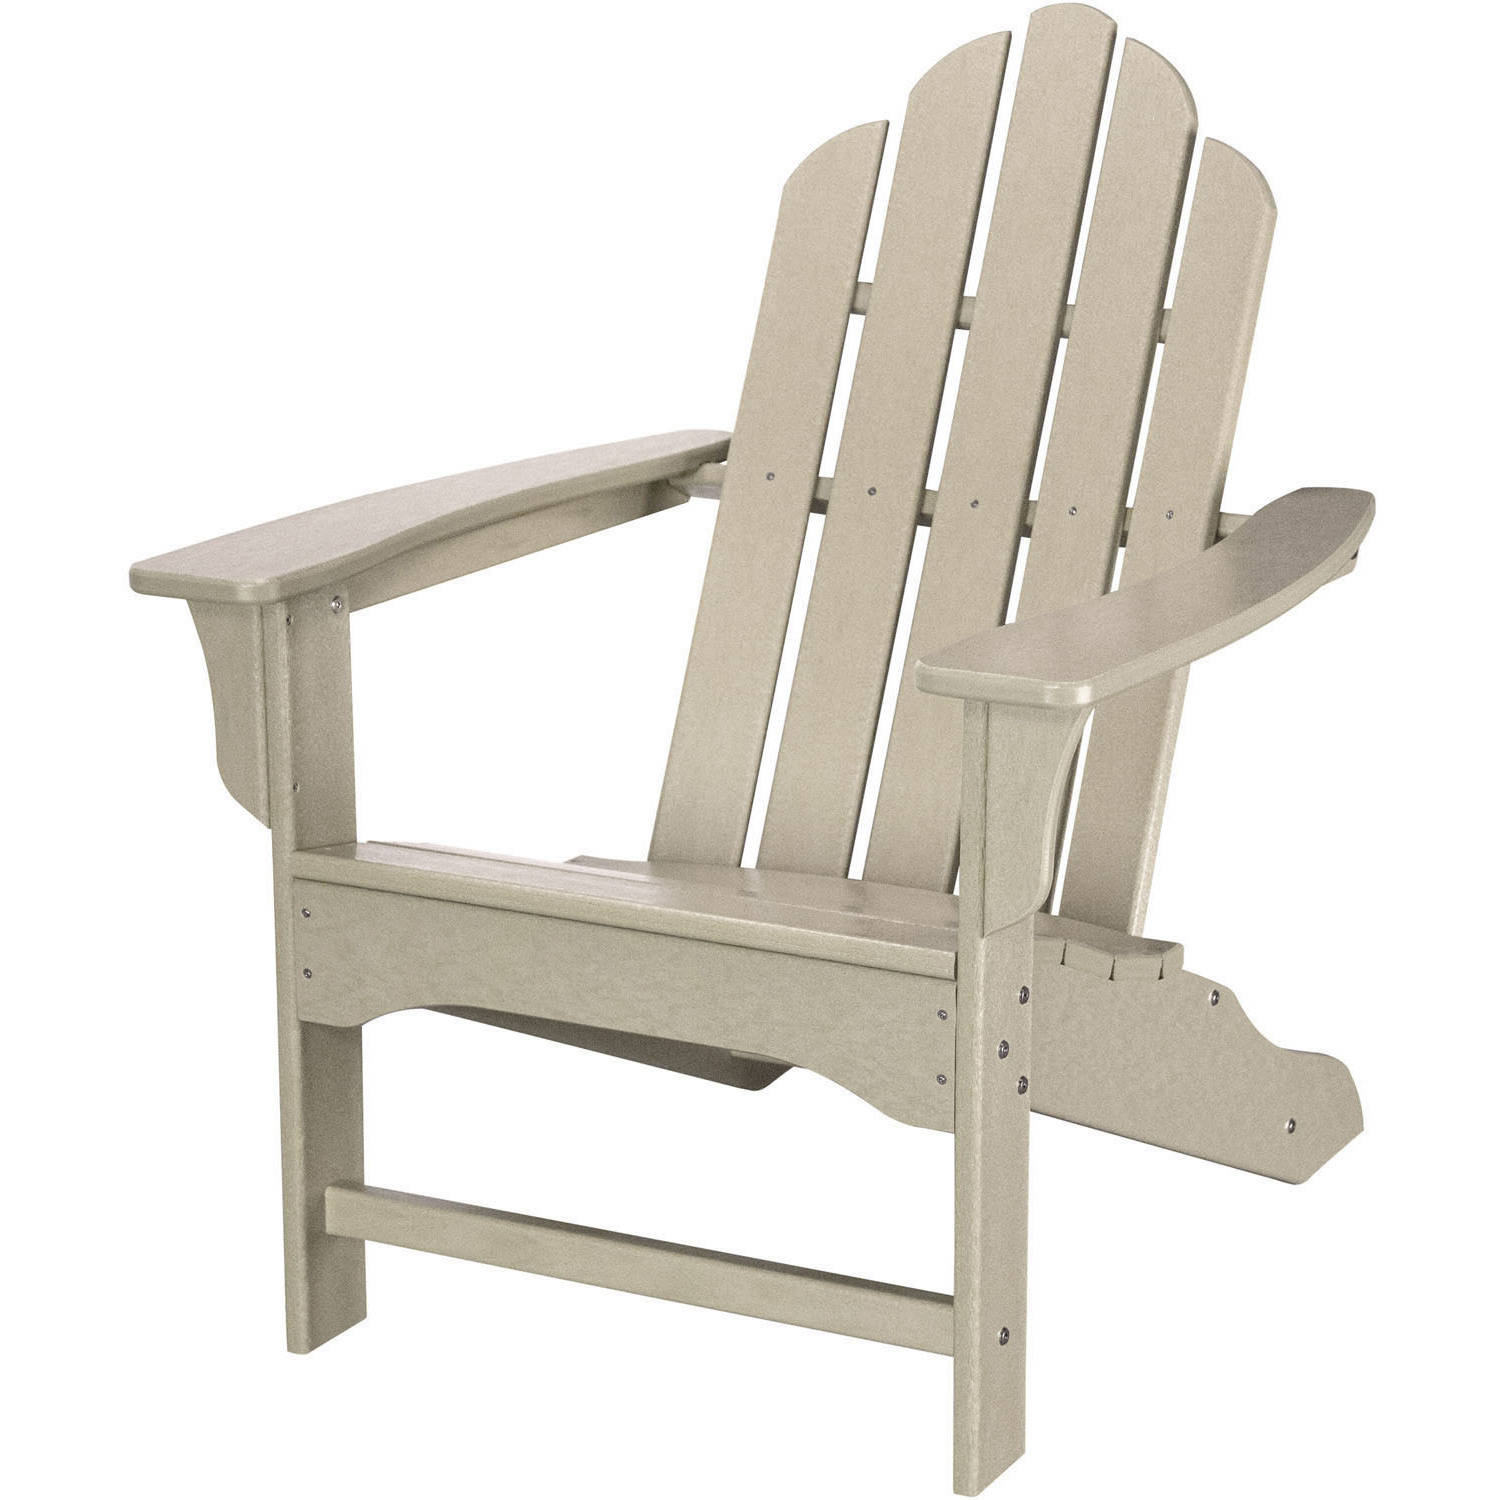 Hanover Outdoor All-Weather Contoured Adirondack Chair by Hanover Outdoor